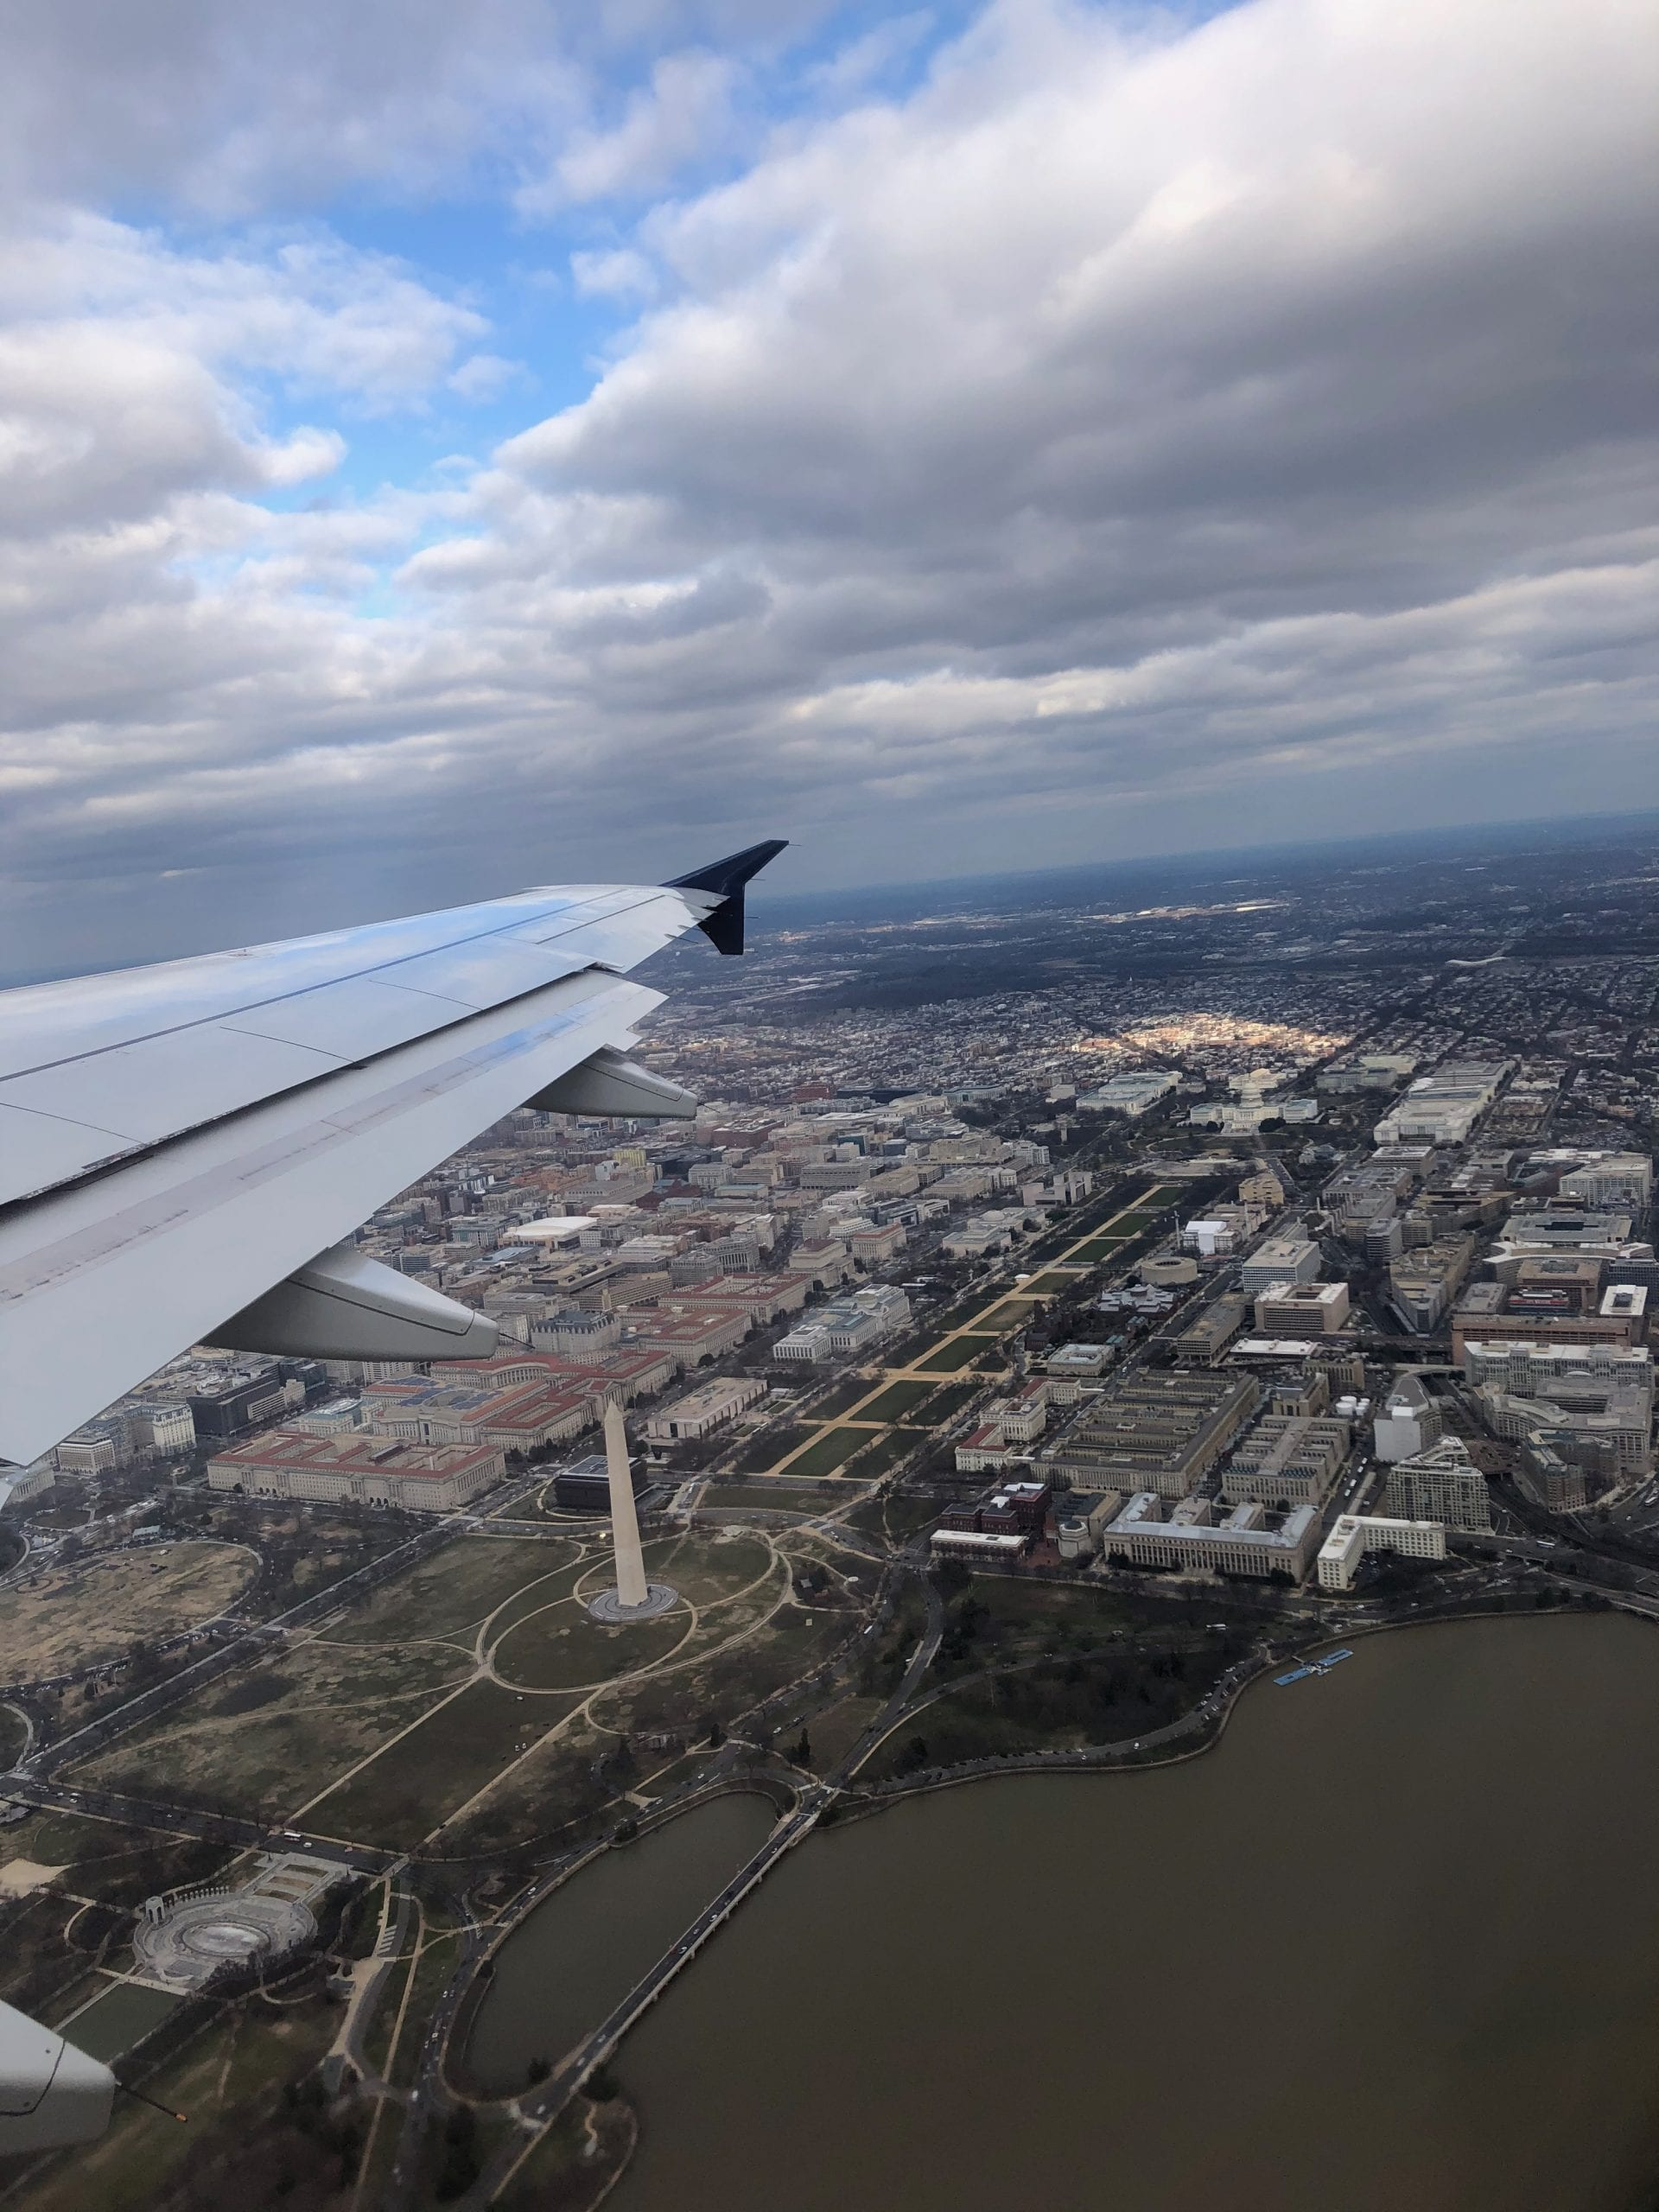 The Washington Monument and National Mall from the view of an airplane